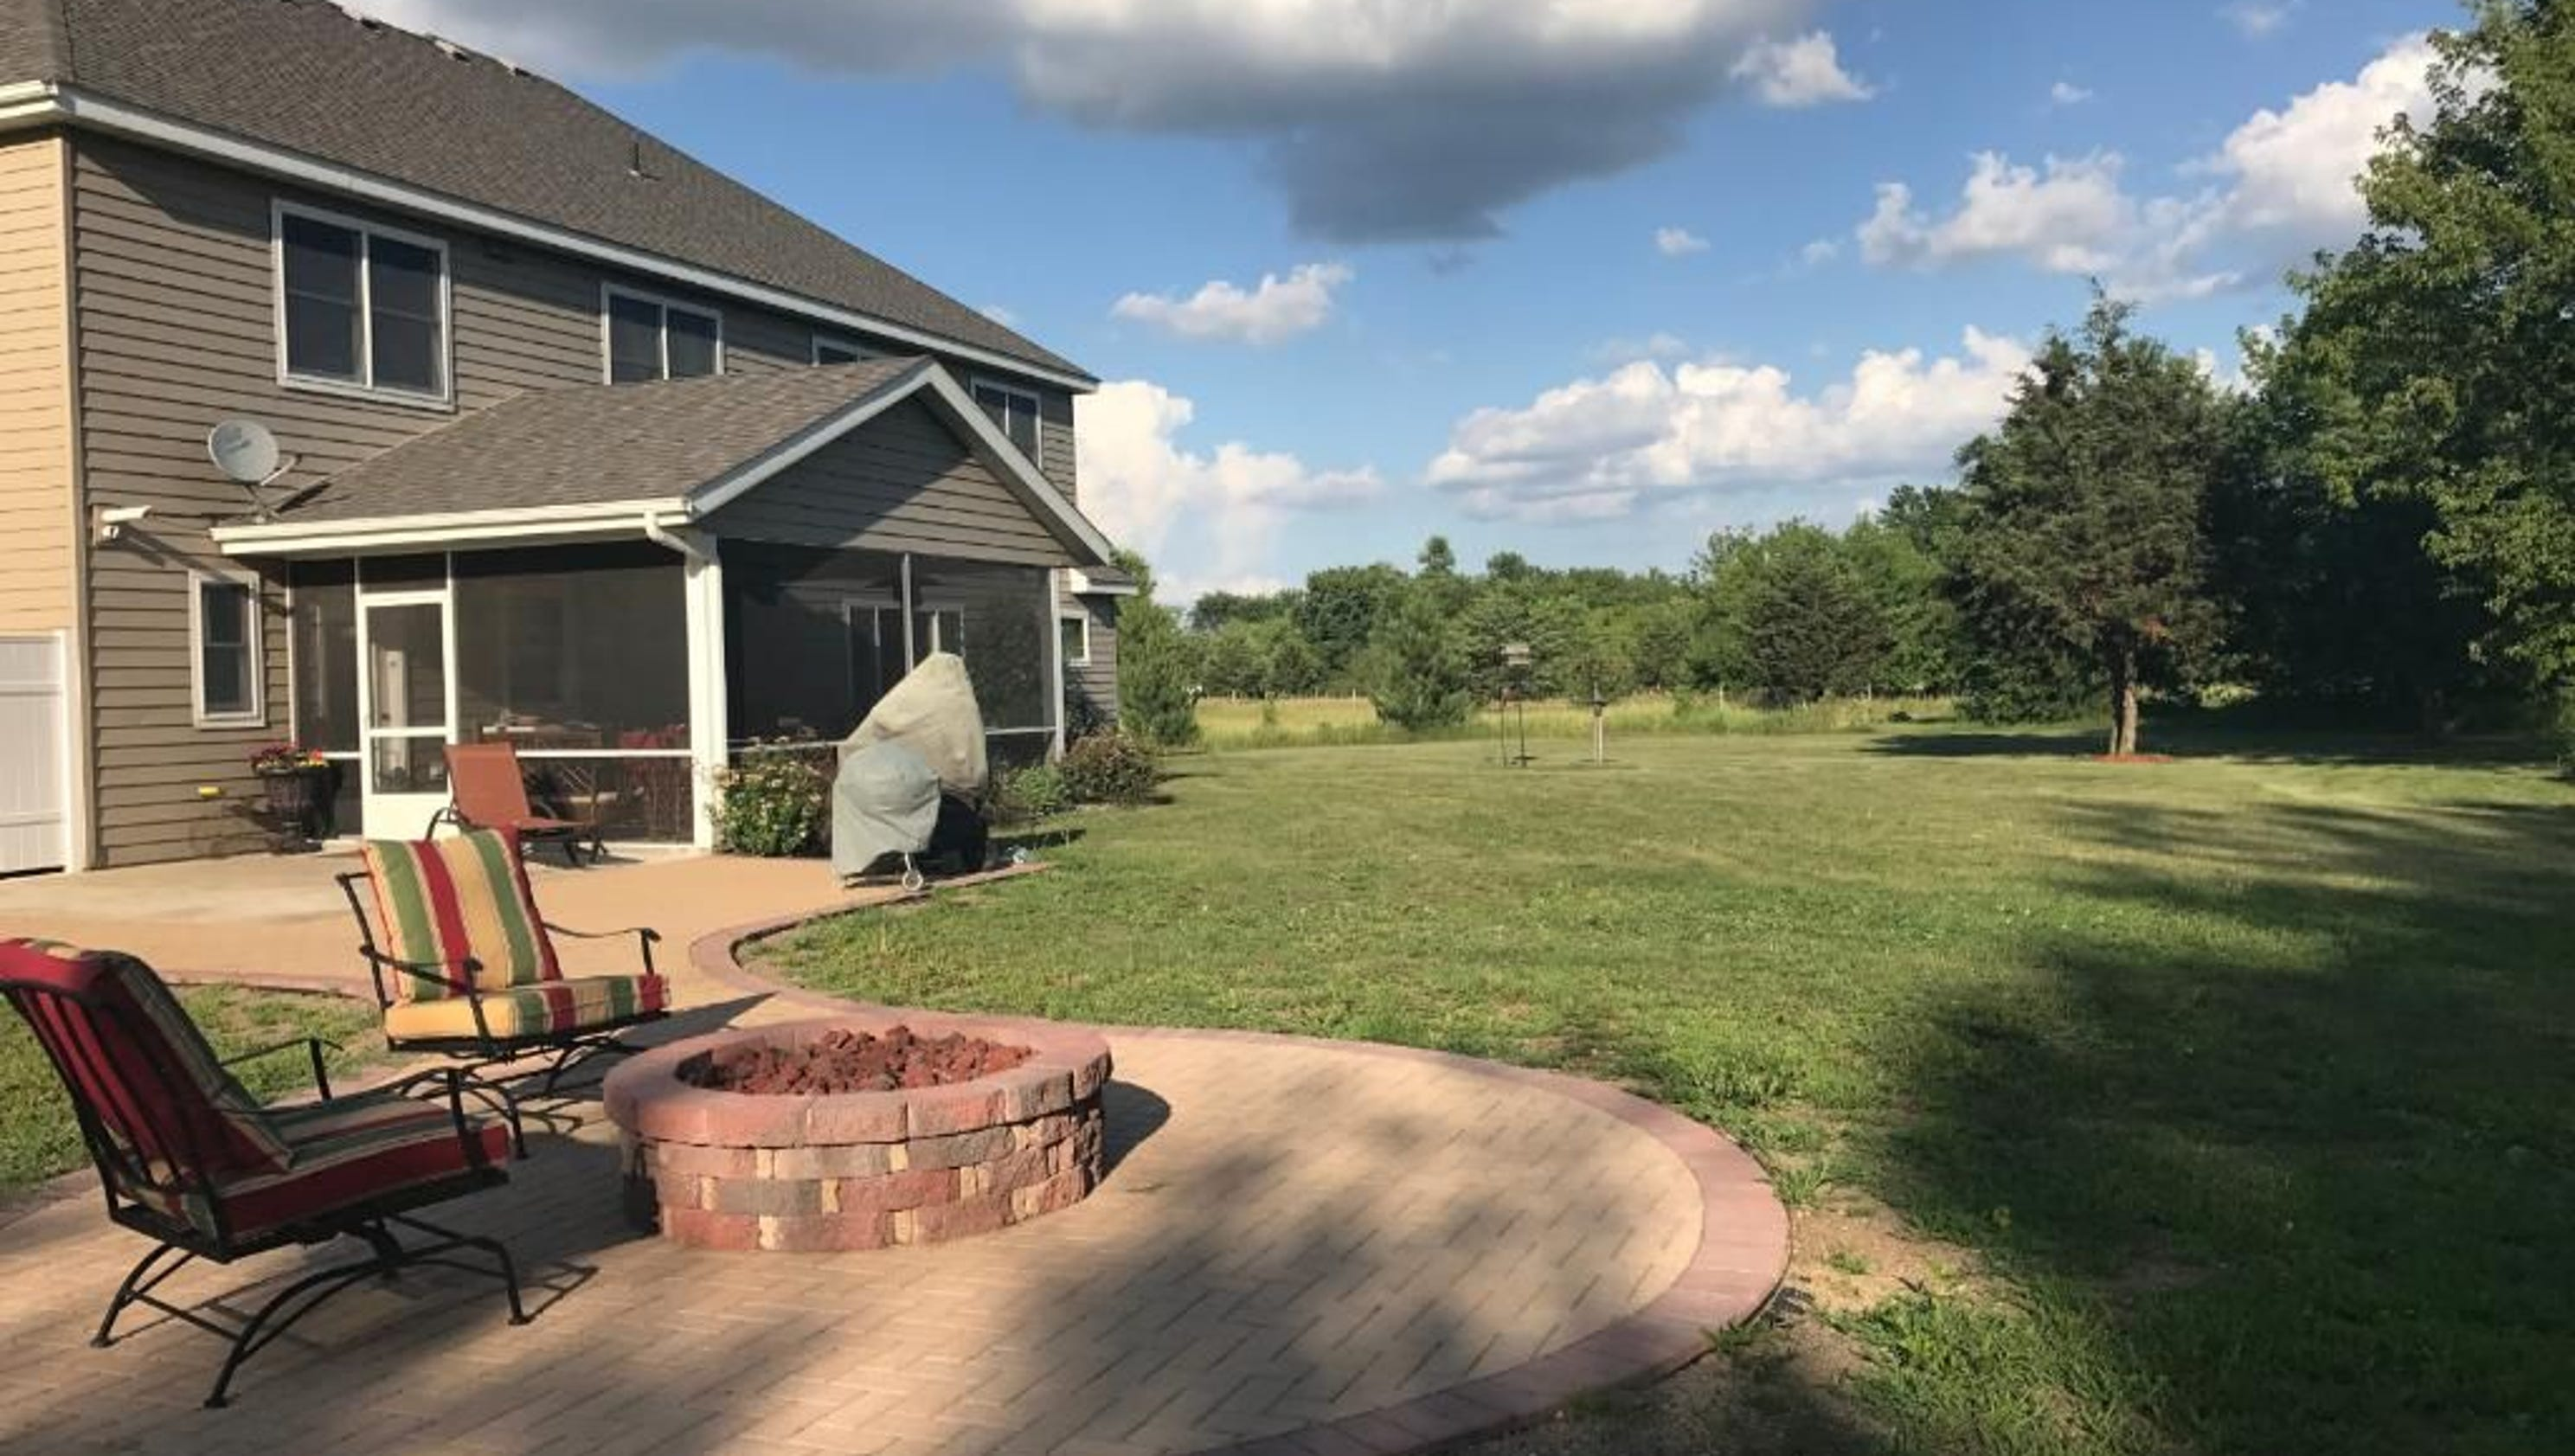 This Can Be A New Picture Of Patio Homes for Sale Sauk Rapids Mn